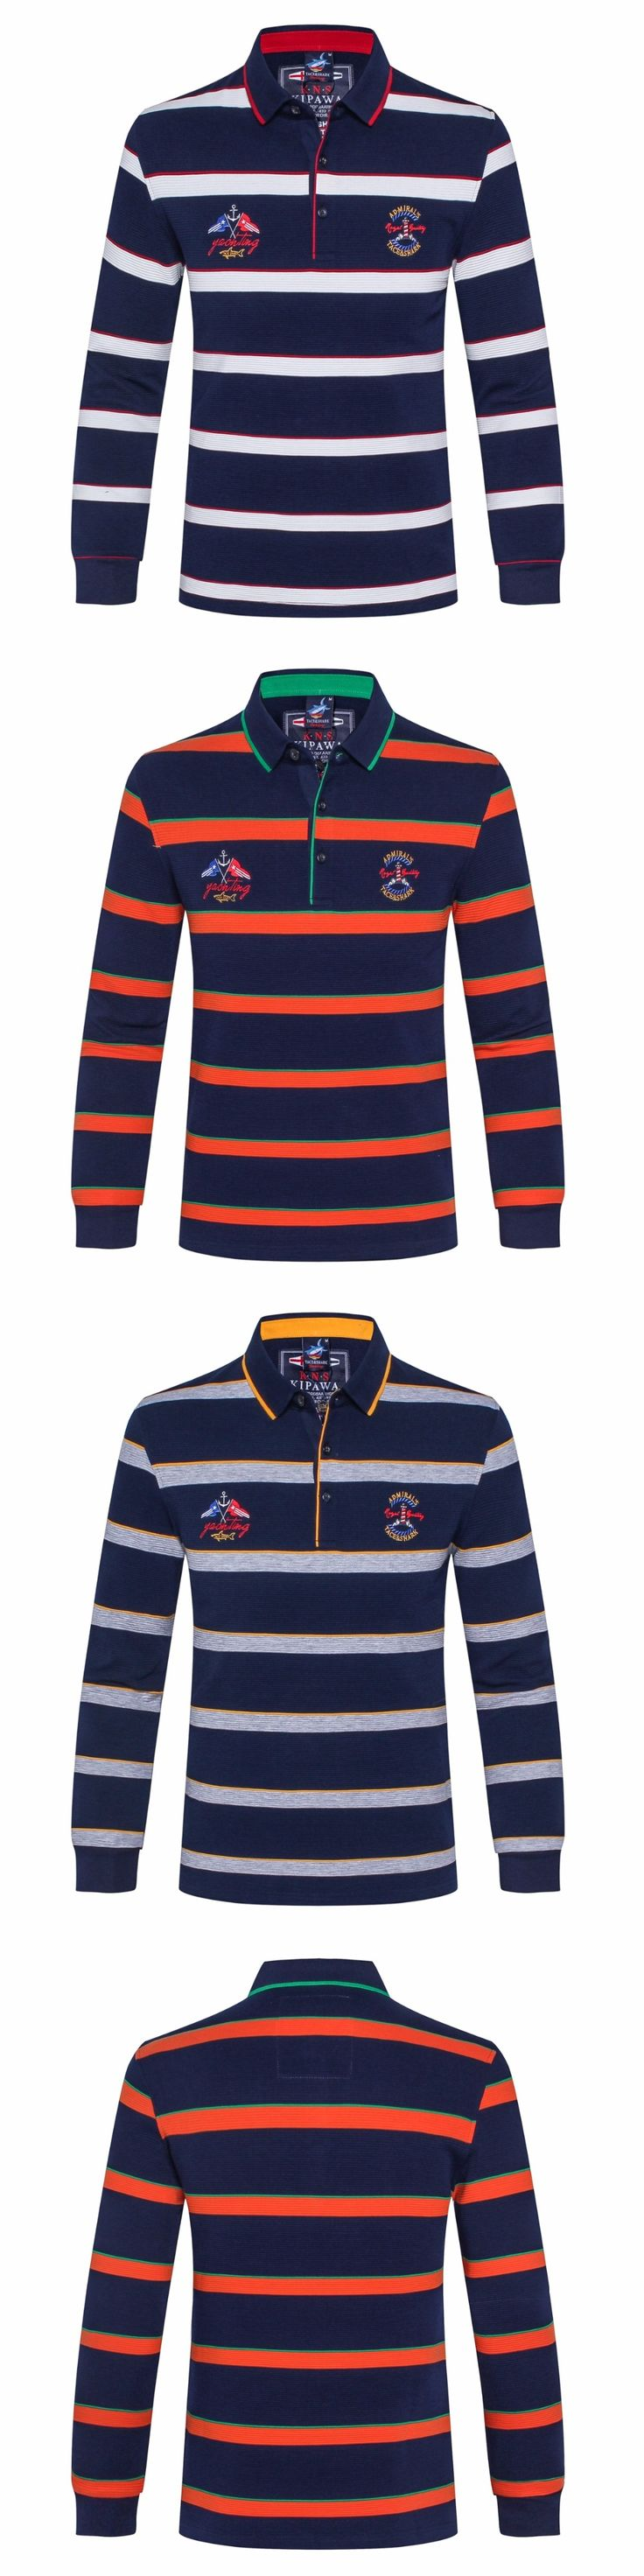 2017 new Europe Size New Brand Men's Solid Long Sleeve Polo Shirt Men's Polo shirts Lapel stripe embroidery billionaire